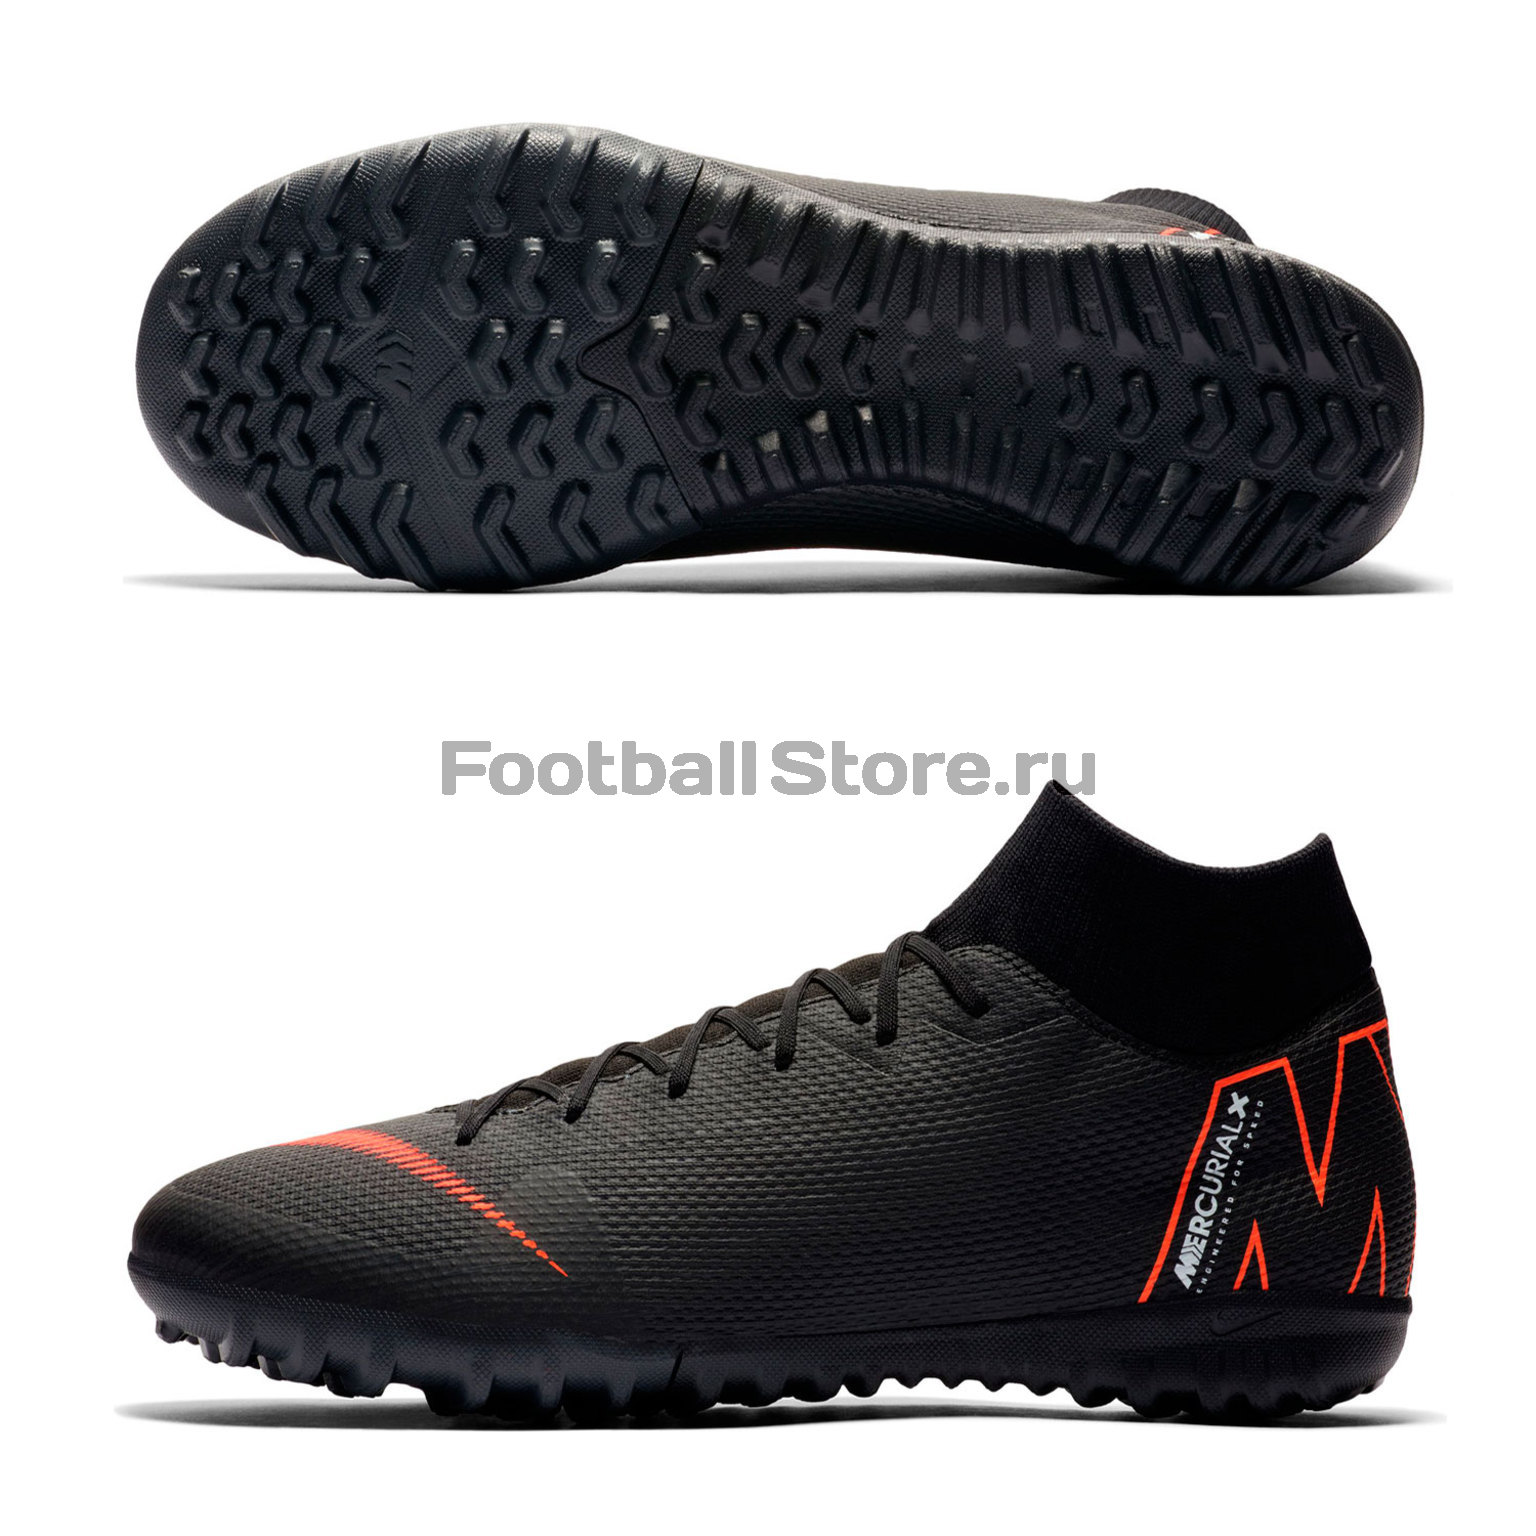 Шиповки Nike SuperFly X 6 Academy TF AH7370-081 шиповки nike lunar legendx 7 pro tf ah7249 080